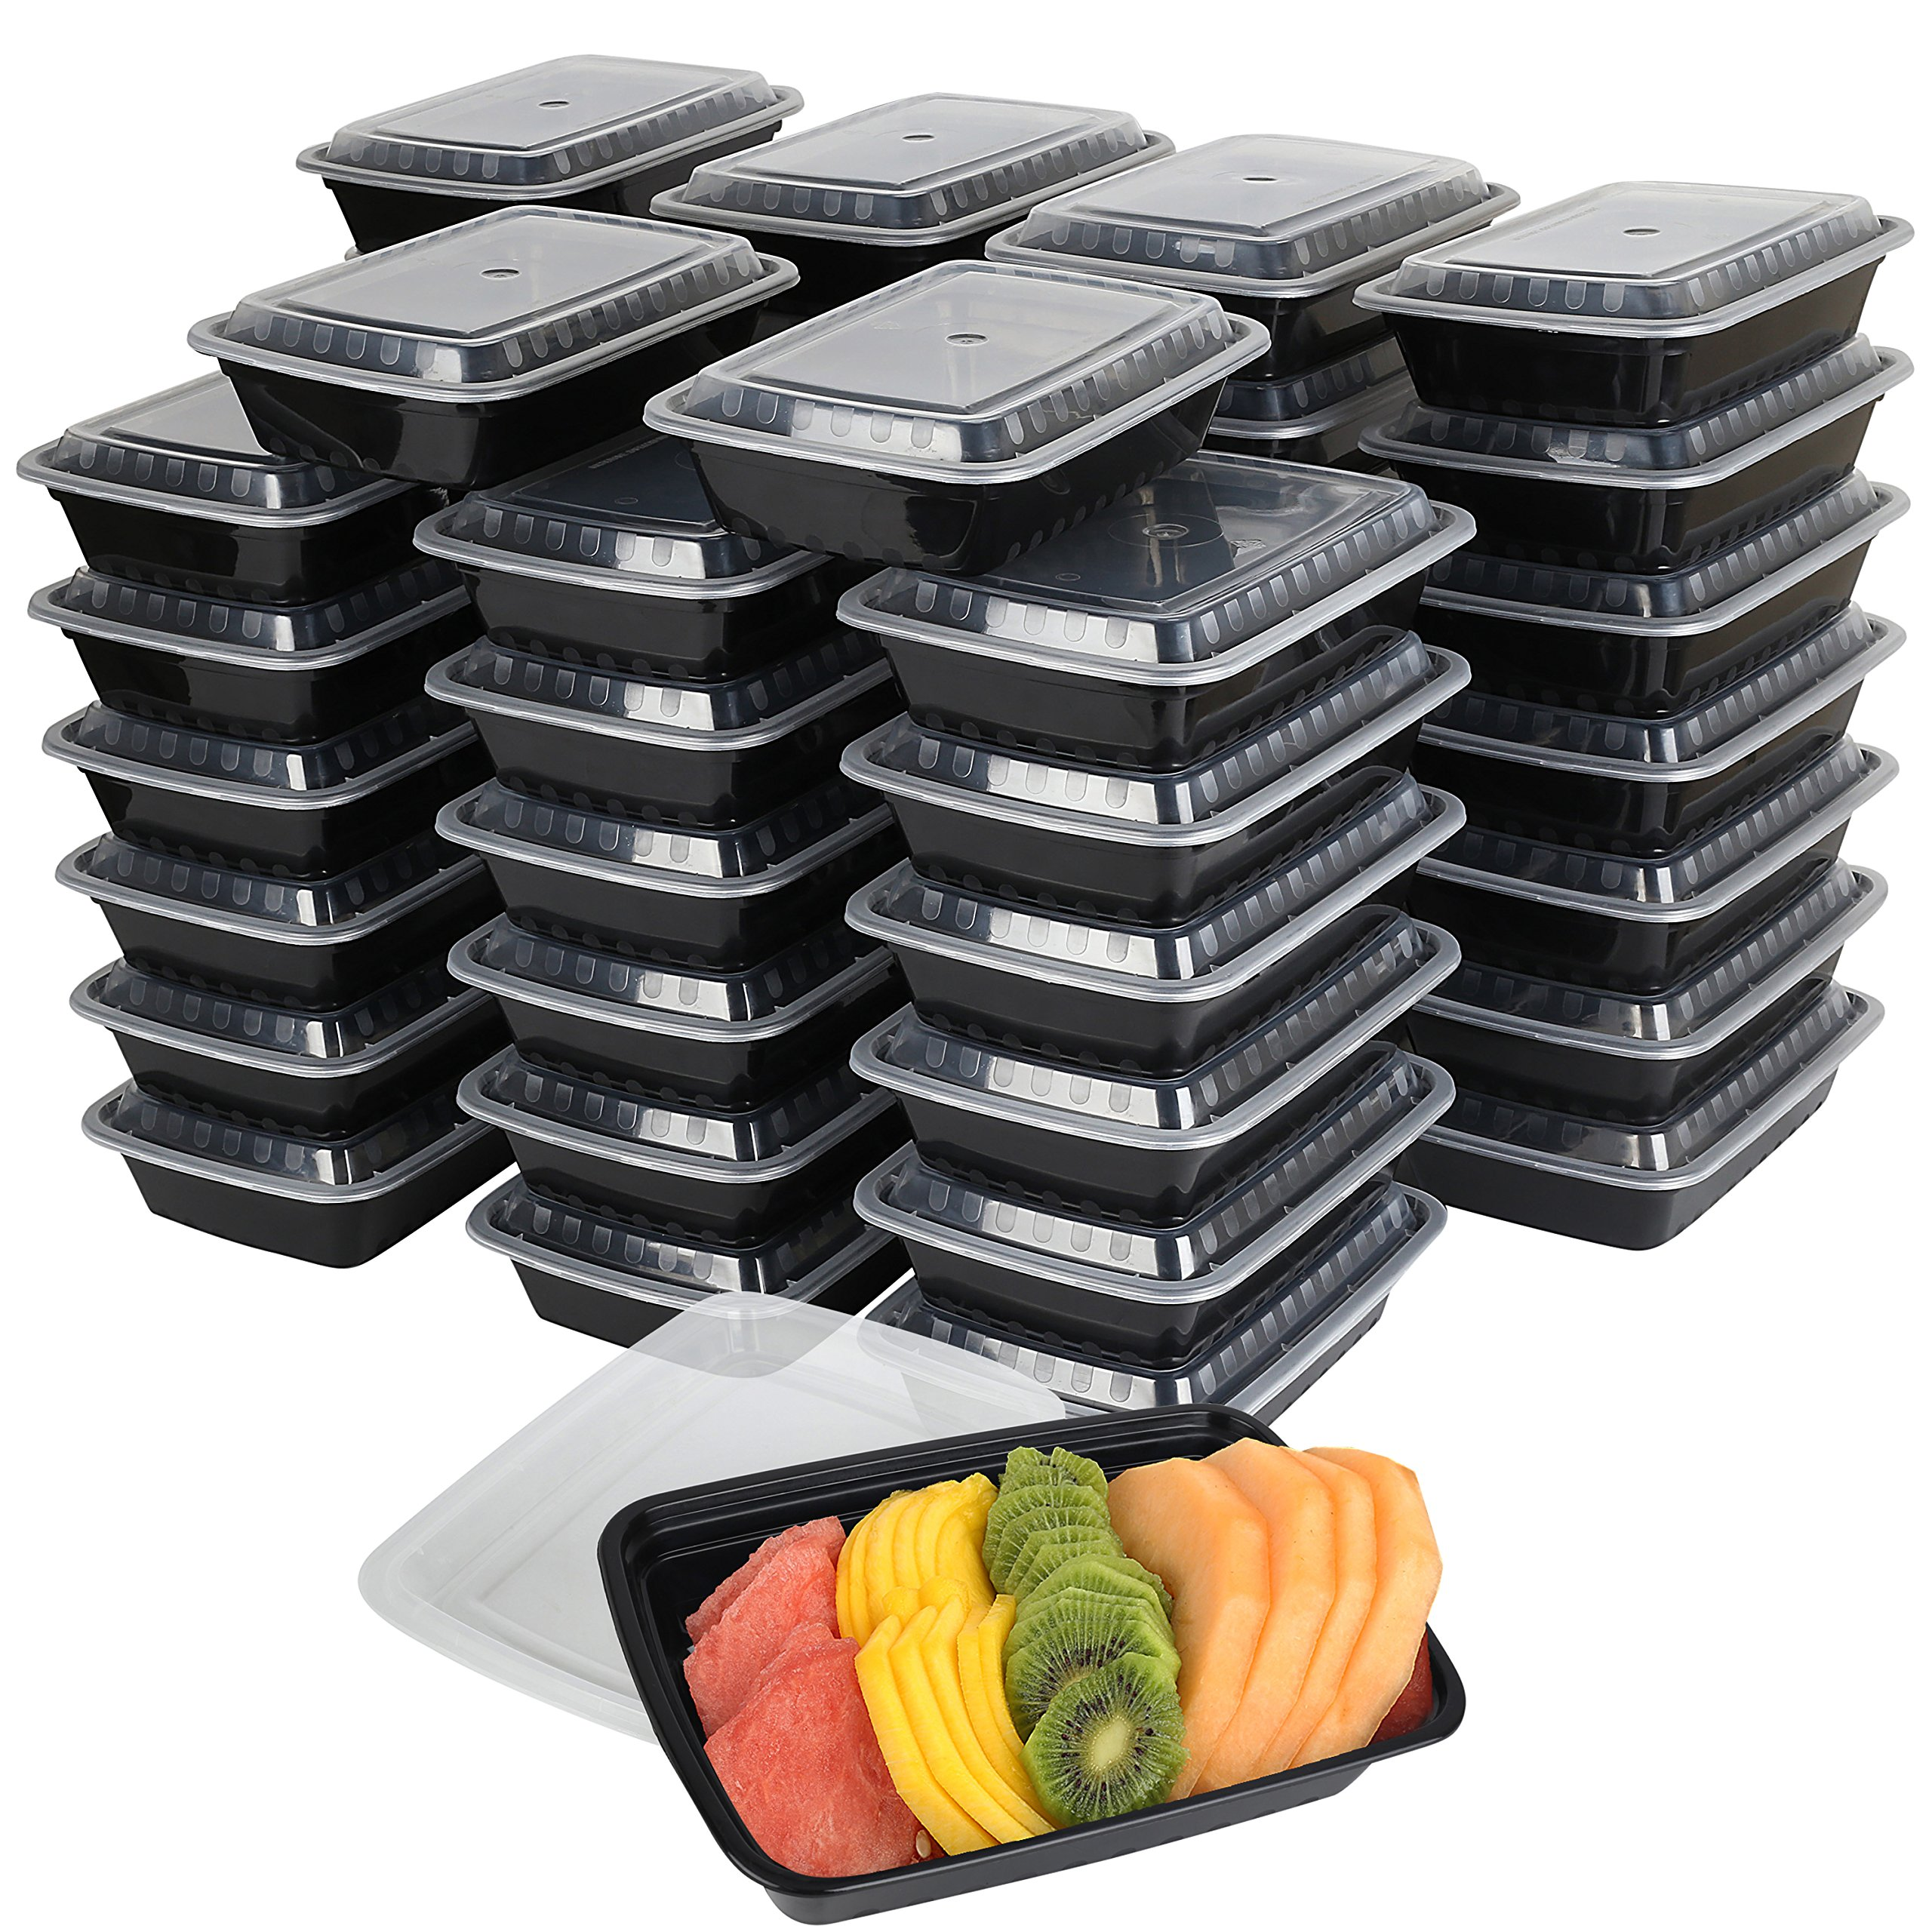 50-Pack Meal Prep Plastic Microwavable Food Containers meal prepping & Lids.''{24 OZ.}'' Black Rectangular Reusable Storage Lunch Boxes -BPA-free Food Grade- Freezer Dishwasher Safe -''PREMIUM QUALITY''